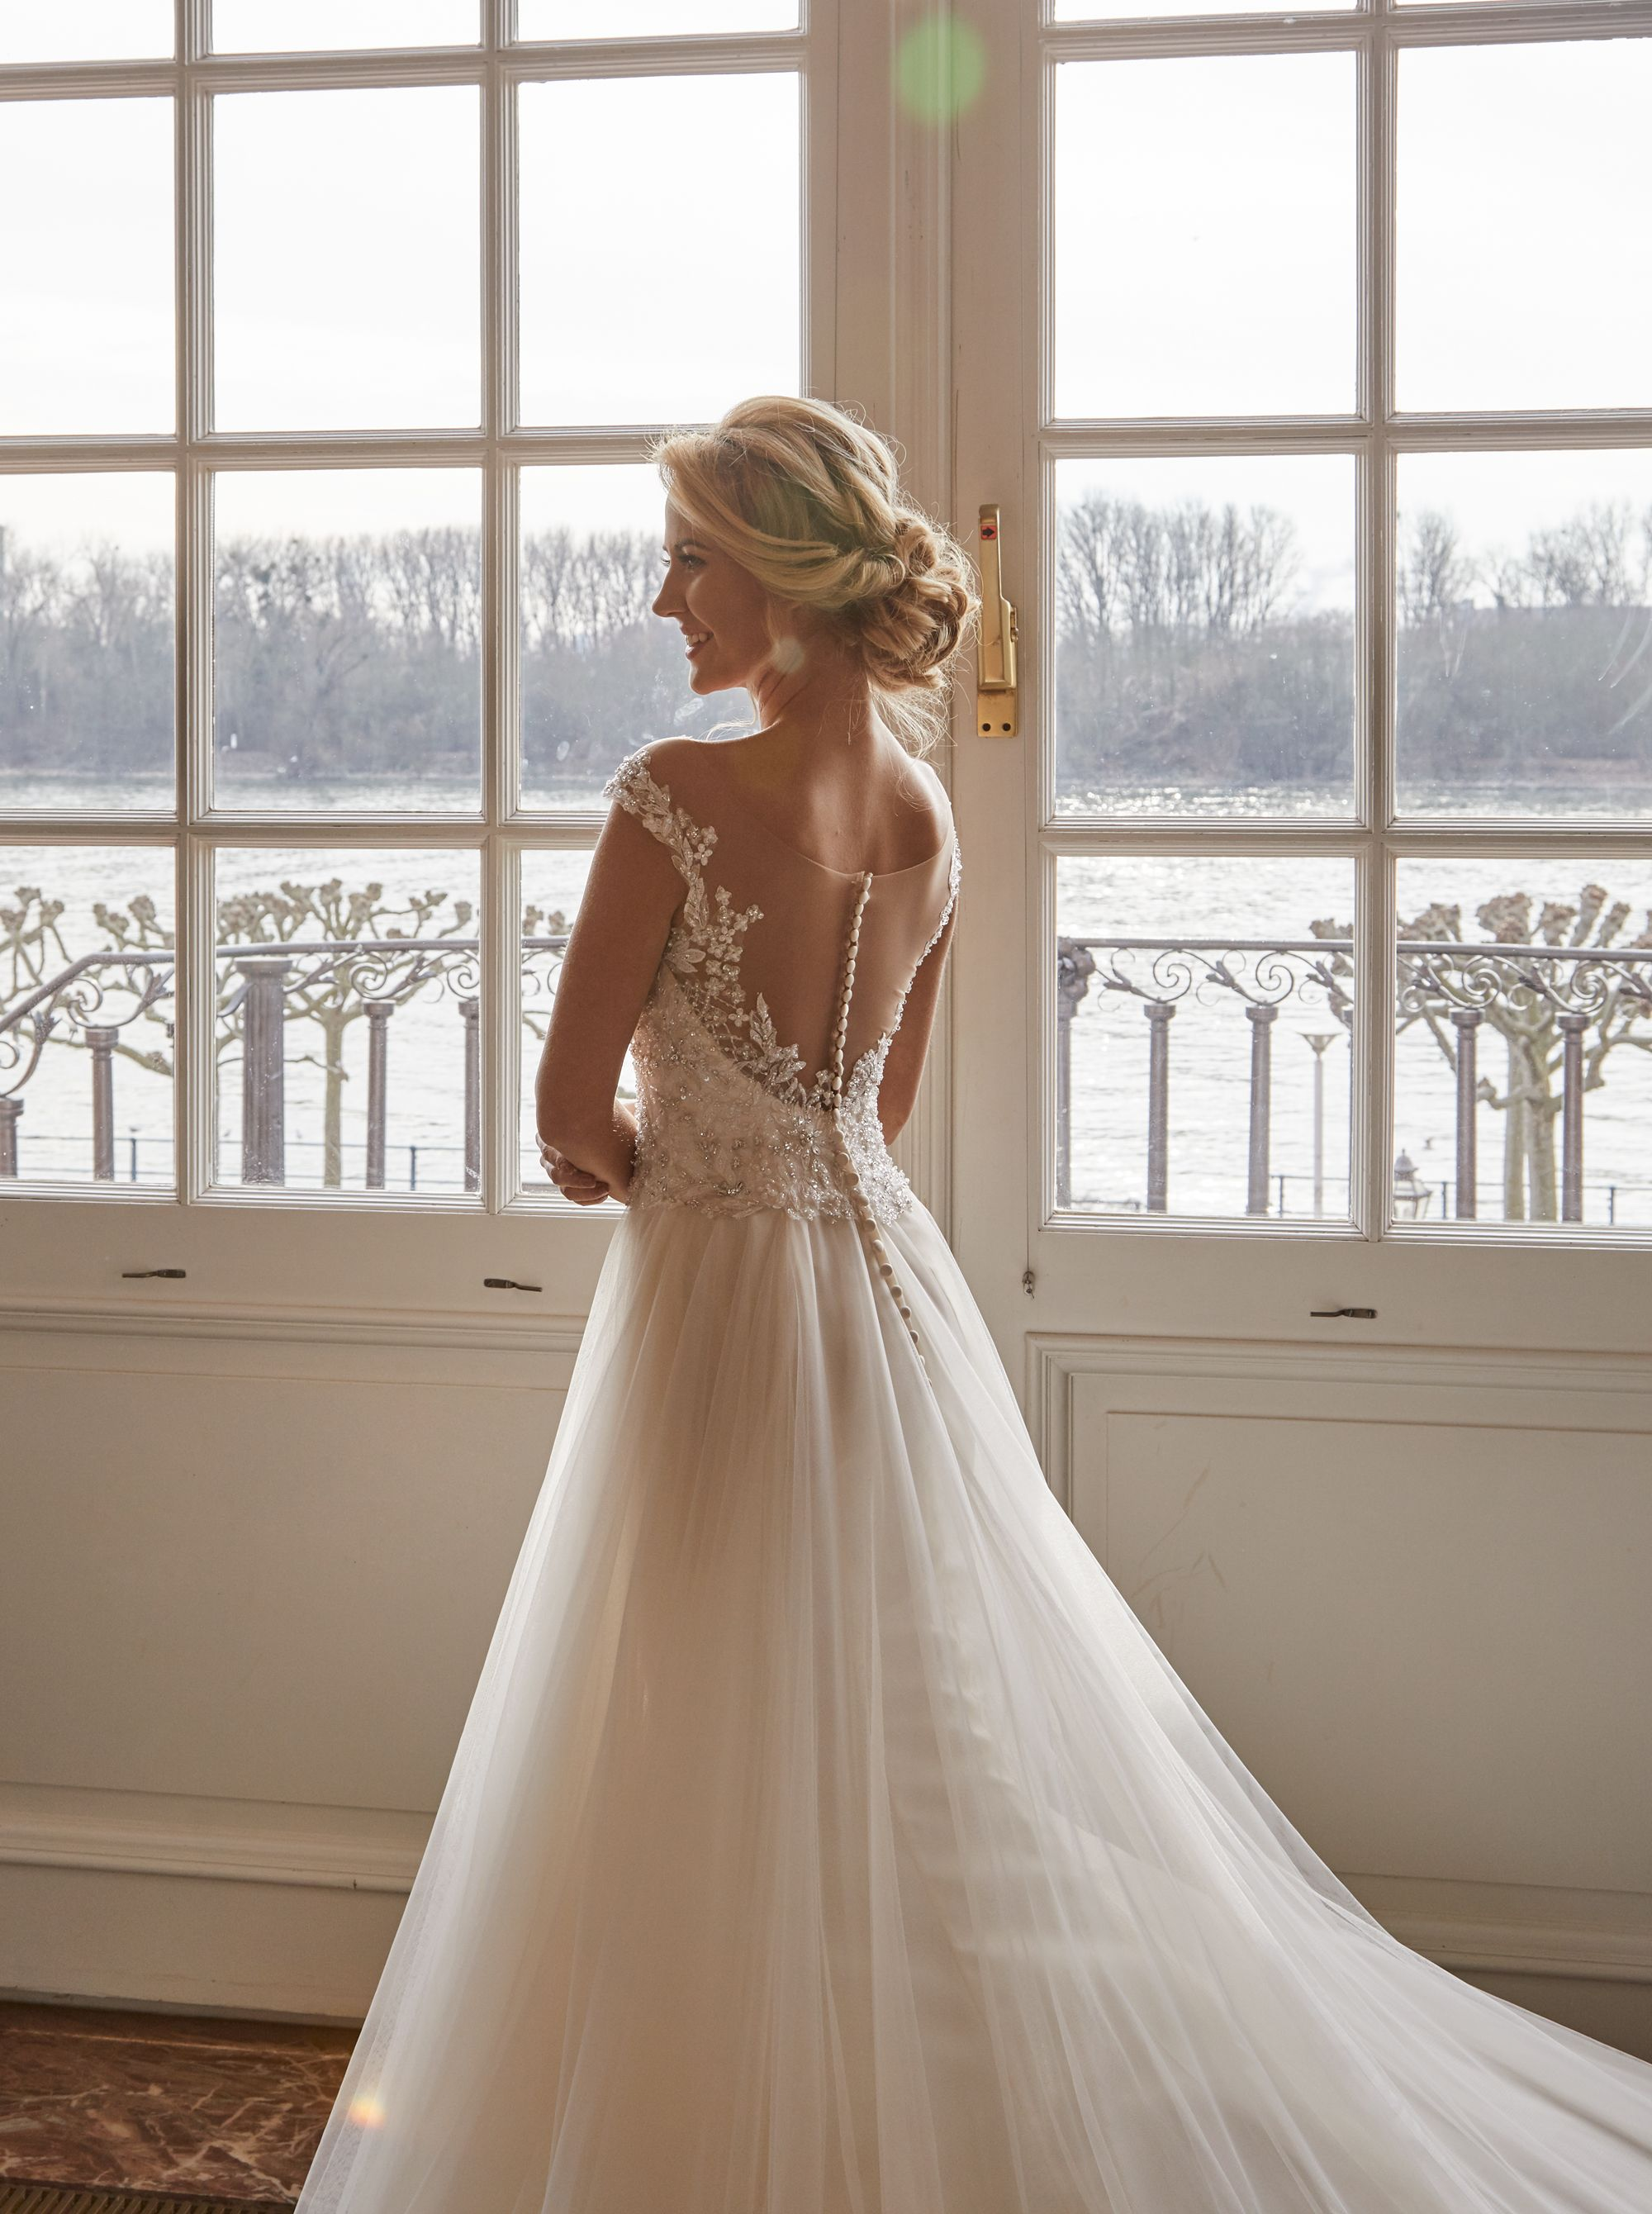 Tulle Bodice With Applique Lace And Romantic Ballroom Tulle Skirt Www Joyceyoungcollections Co Uk Wedding Dresses Lace Designer Wedding Dresses Bridal Dresses